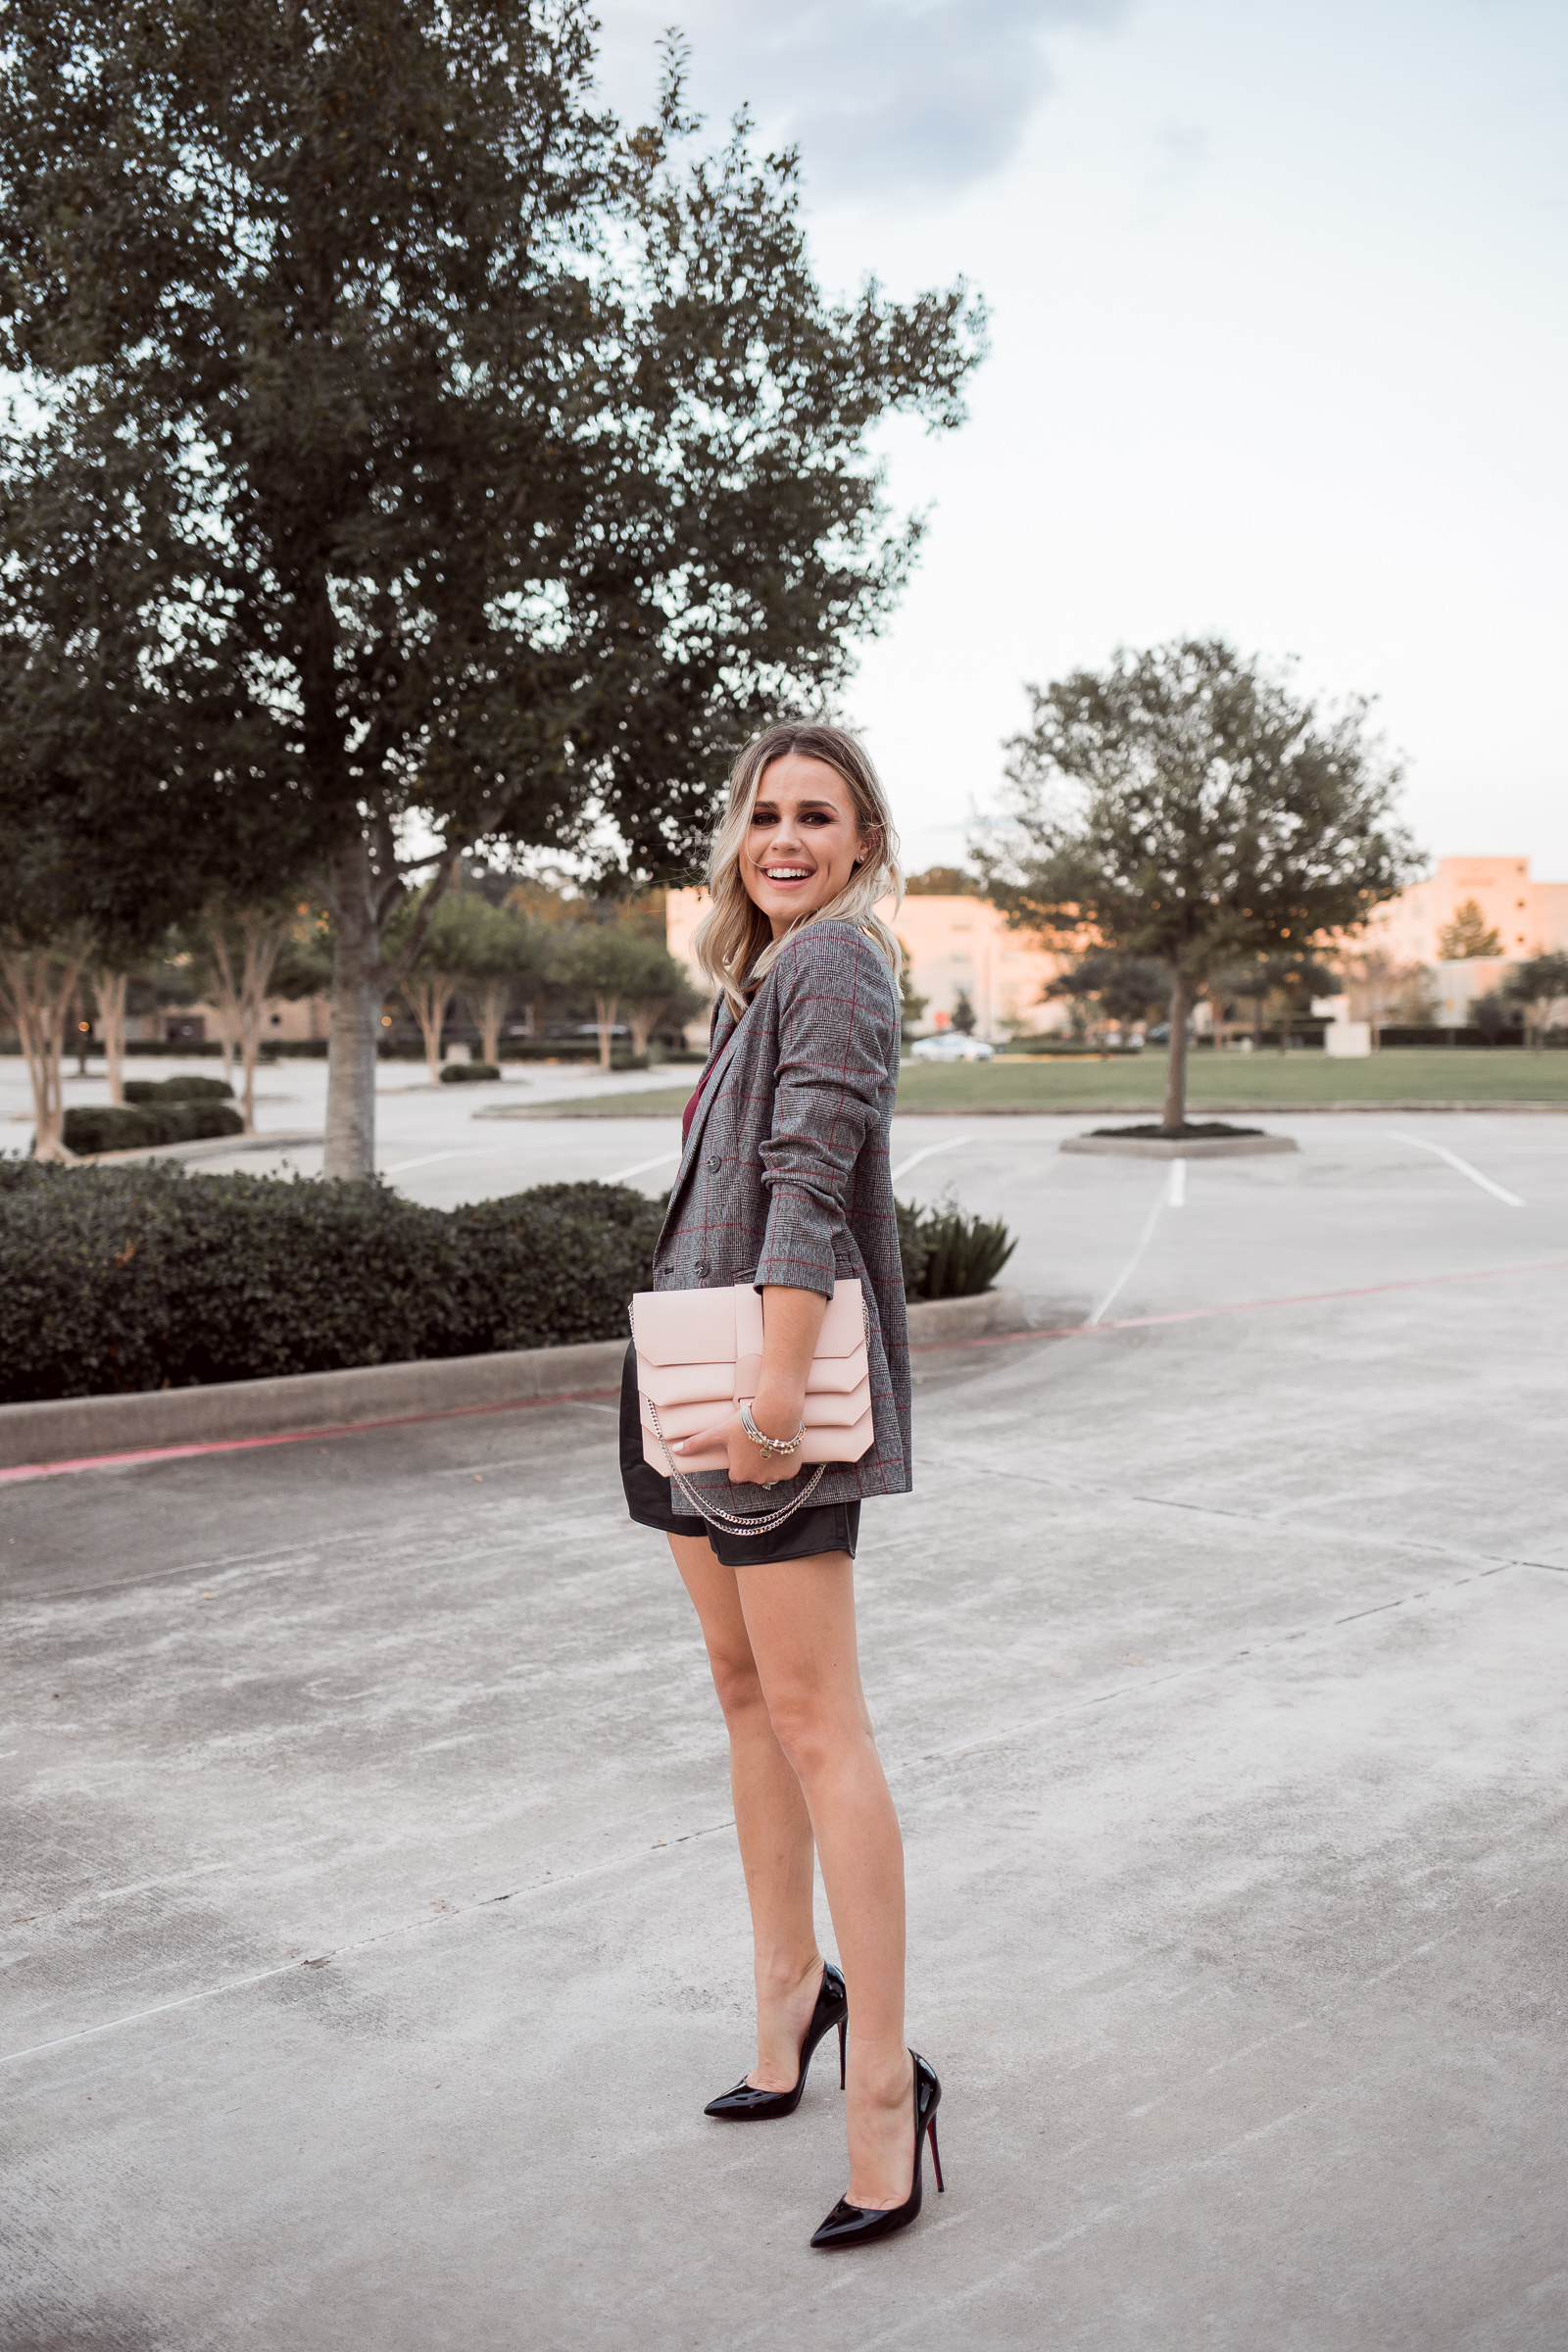 Houston Fashion blogger Uptown with Elly Brown wears a faux leather shorts